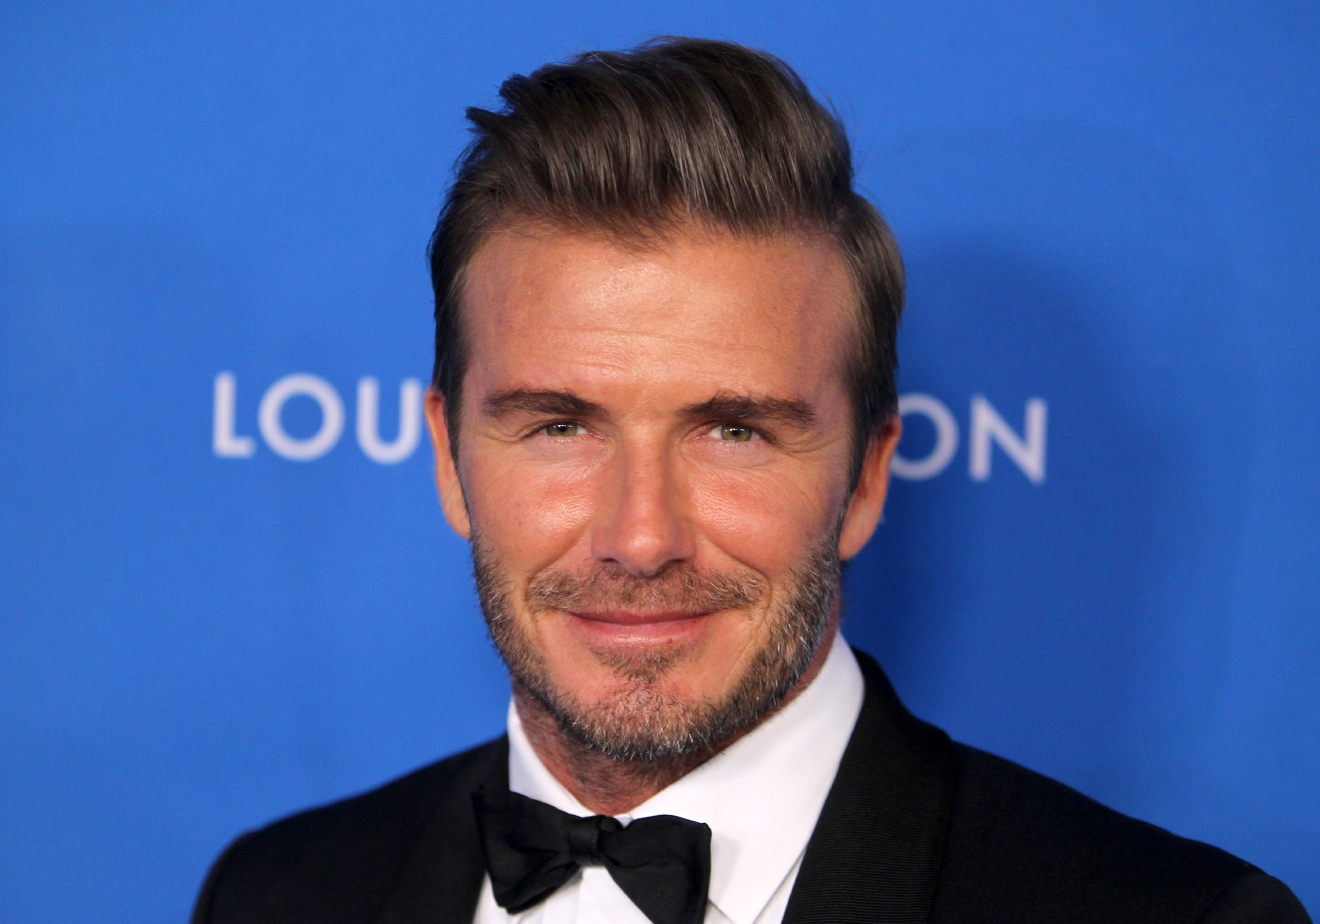 6th Biennial UNICEF Ball at the Beverly Wilshire Hotel - Arrivals                                    Featuring: David Beckham                  Where: Los Angeles, California, United States                  When: 13 Jan 2016                  Credit: FayesVision/WENN.com